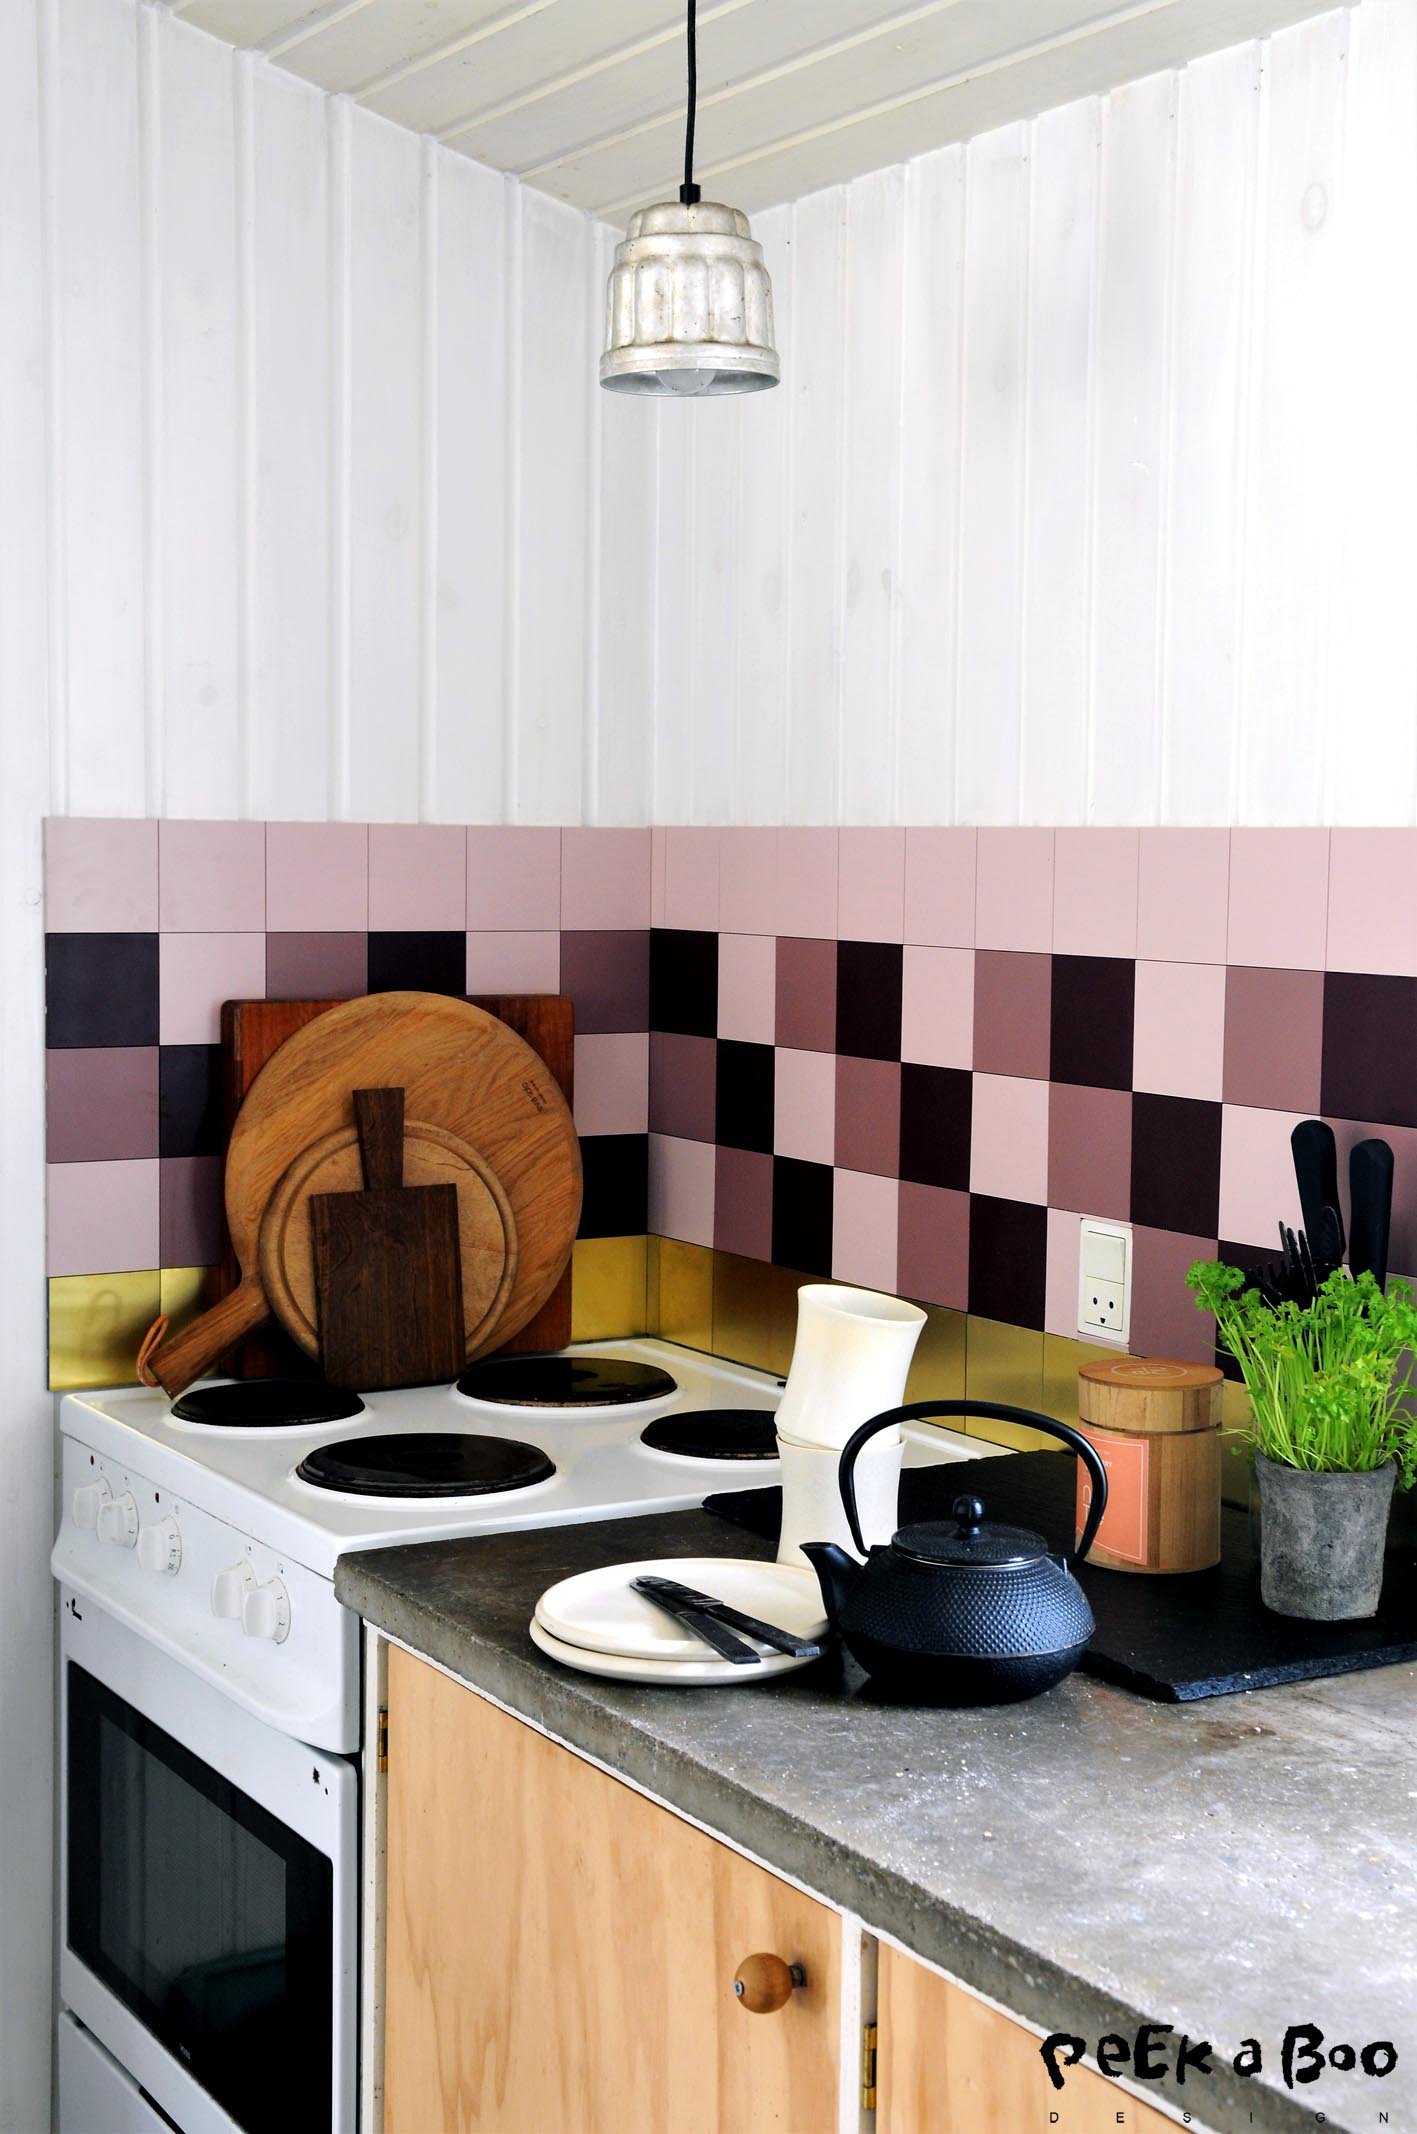 Girly kitchen version in rose hues.